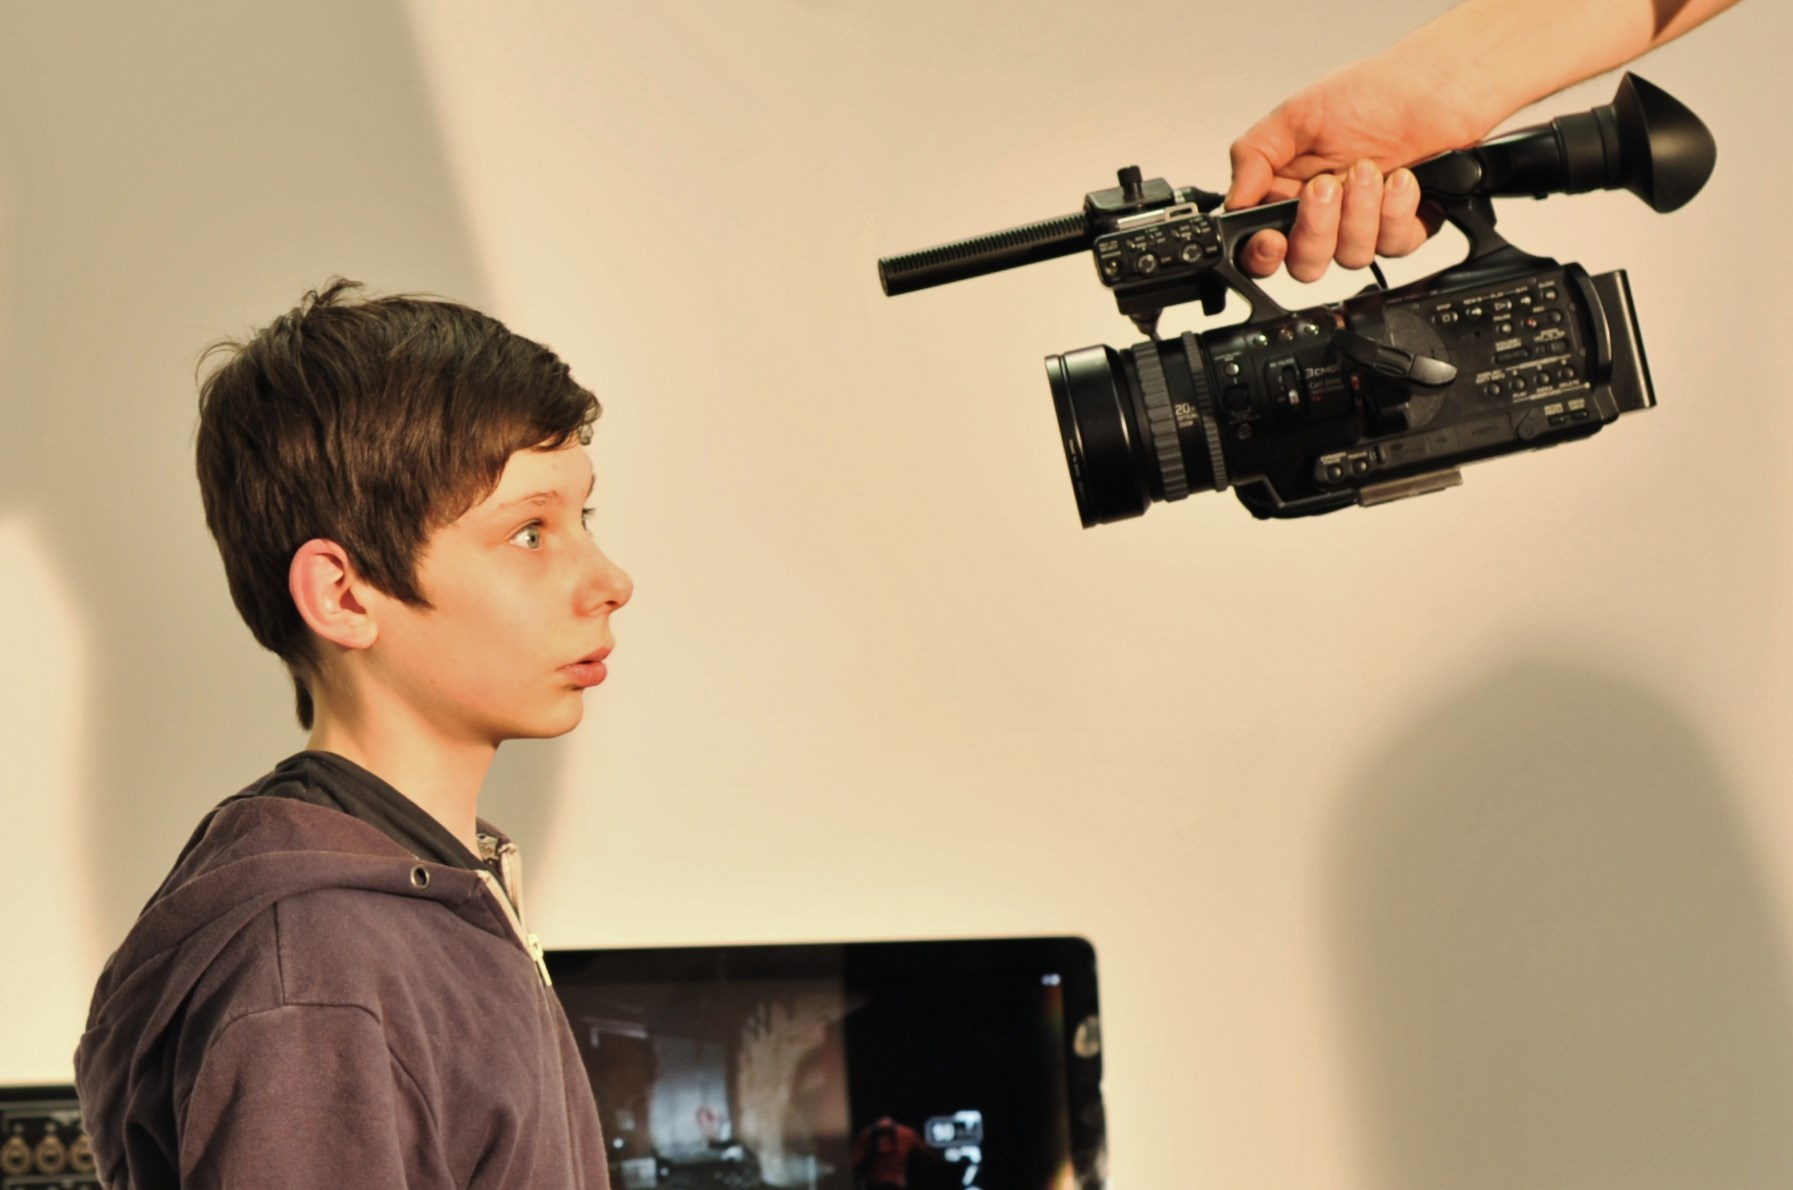 An alarmed looking young man, looking into a piece of recording equipment held by someone out of frame